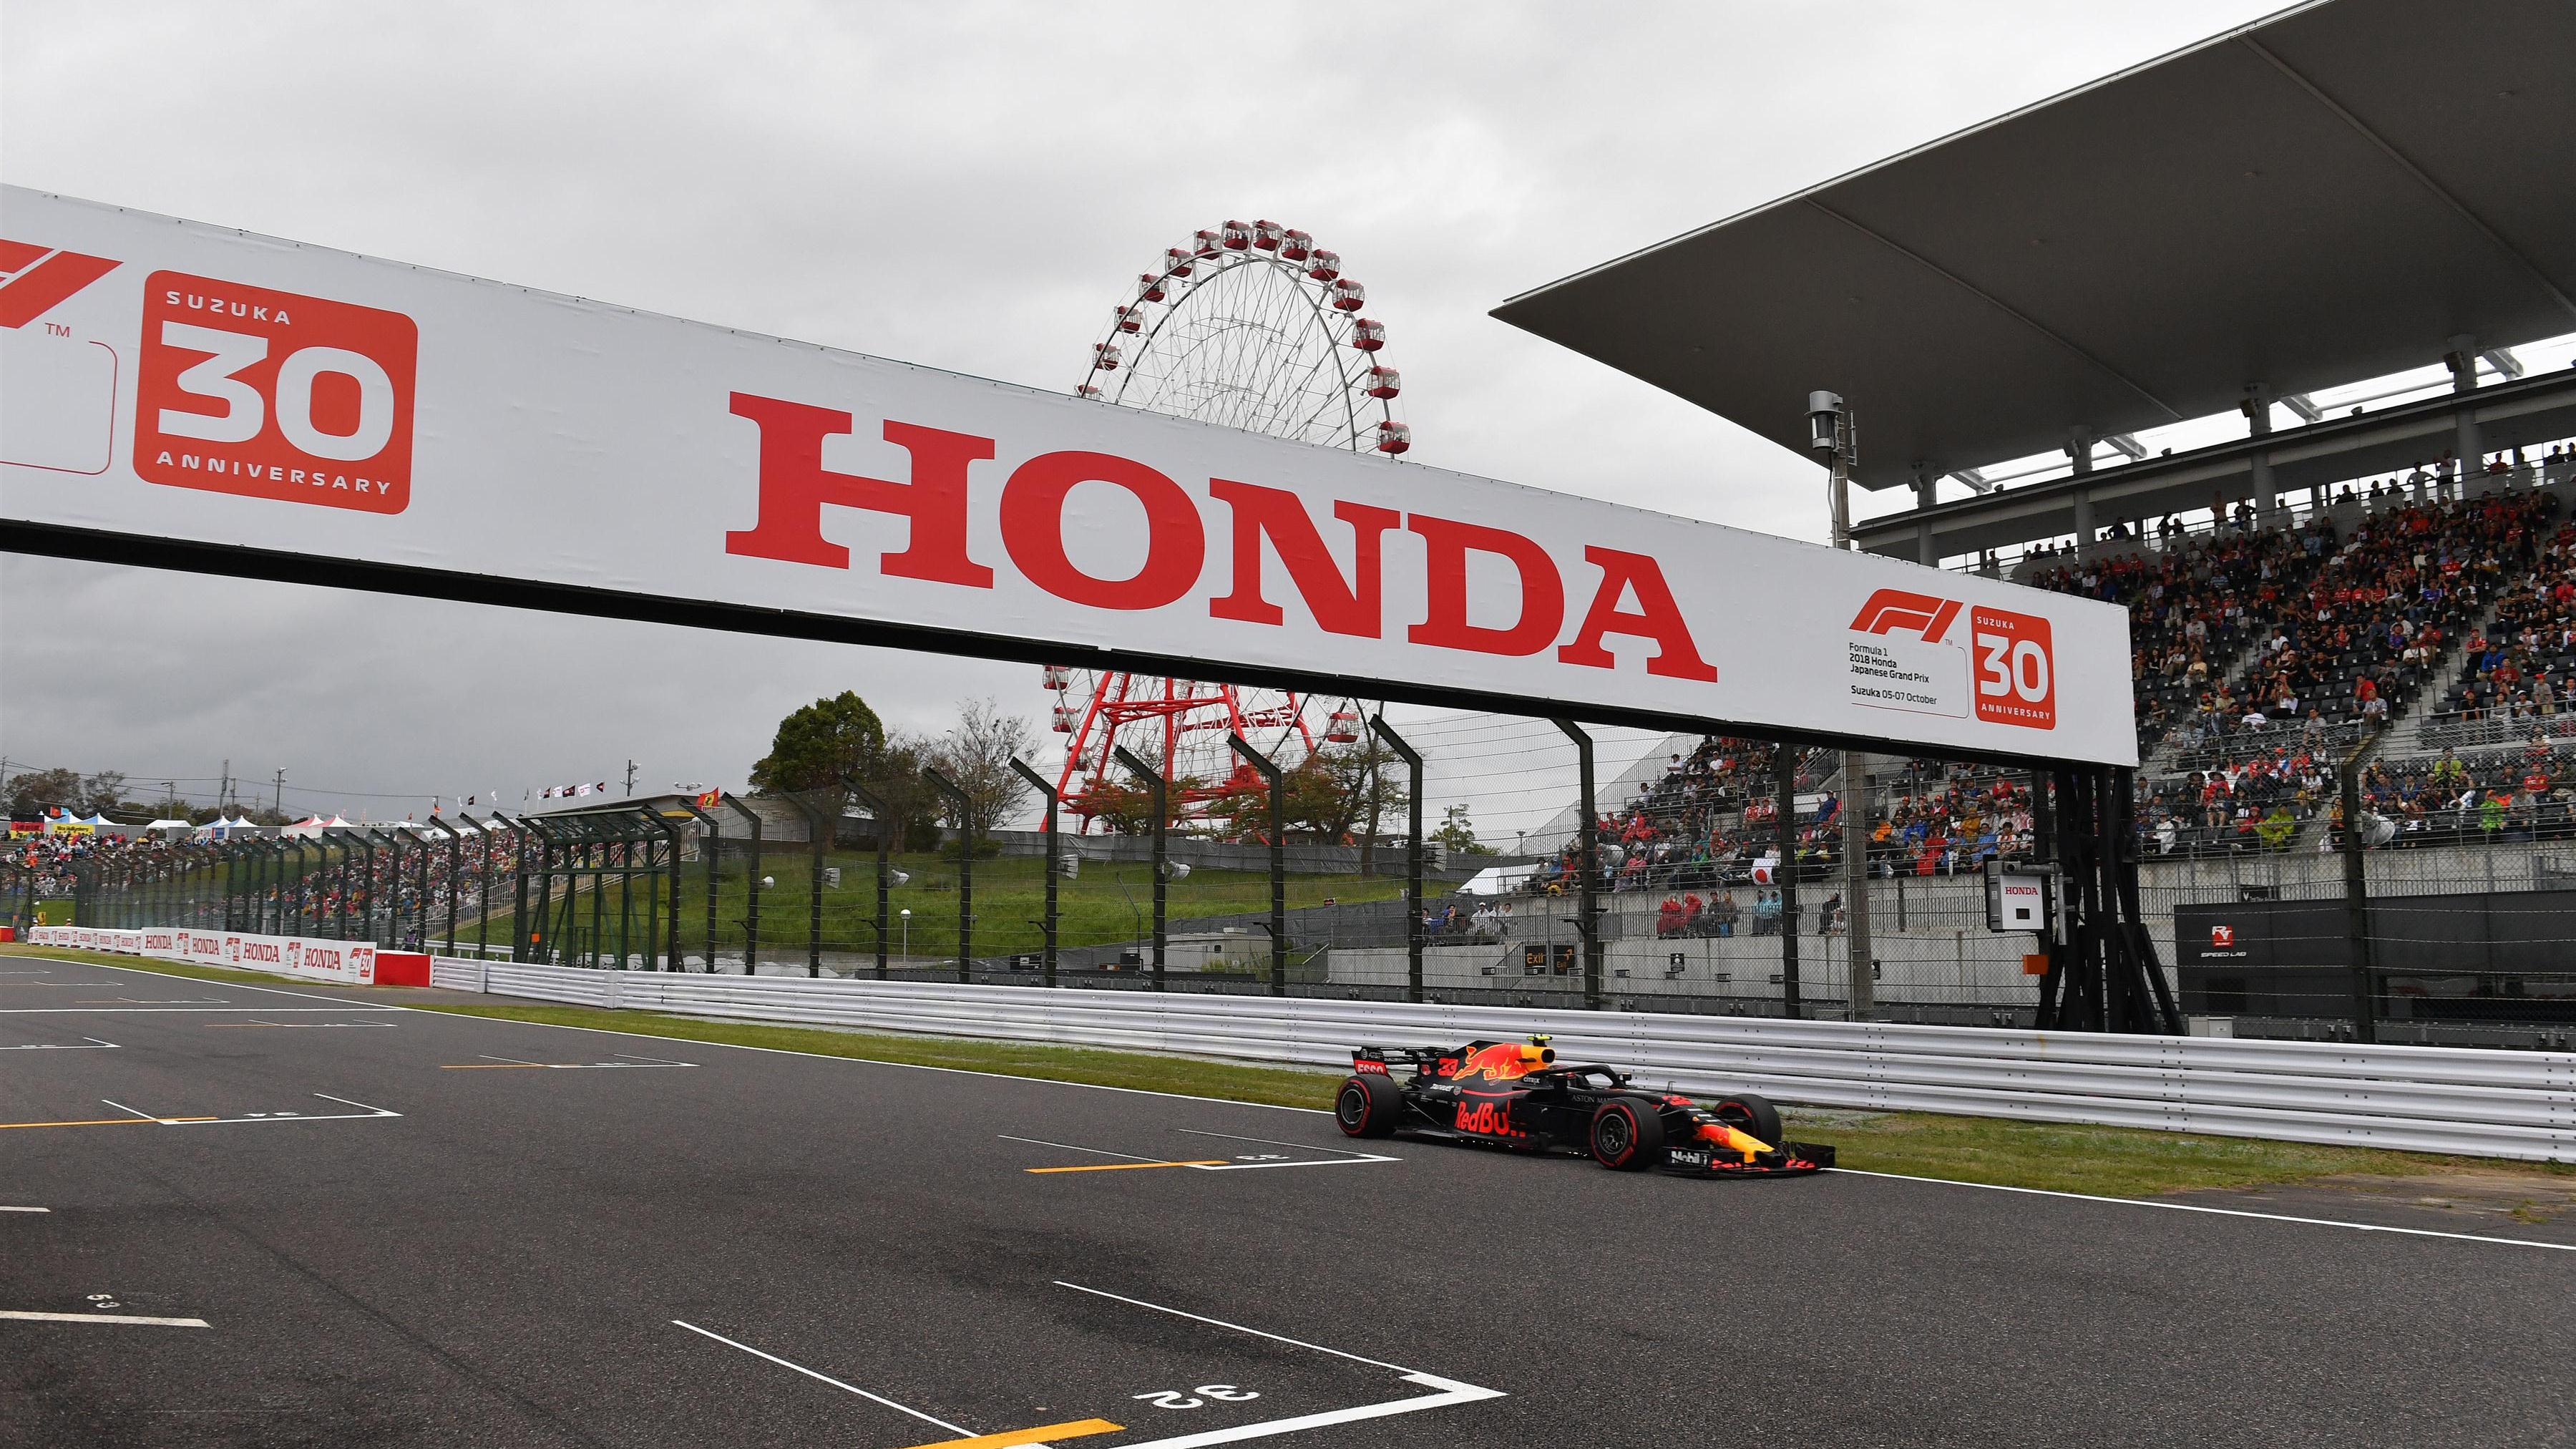 On-song Honda would let Red Bull fight with Mercedes and Ferrari in 2019 – Horner